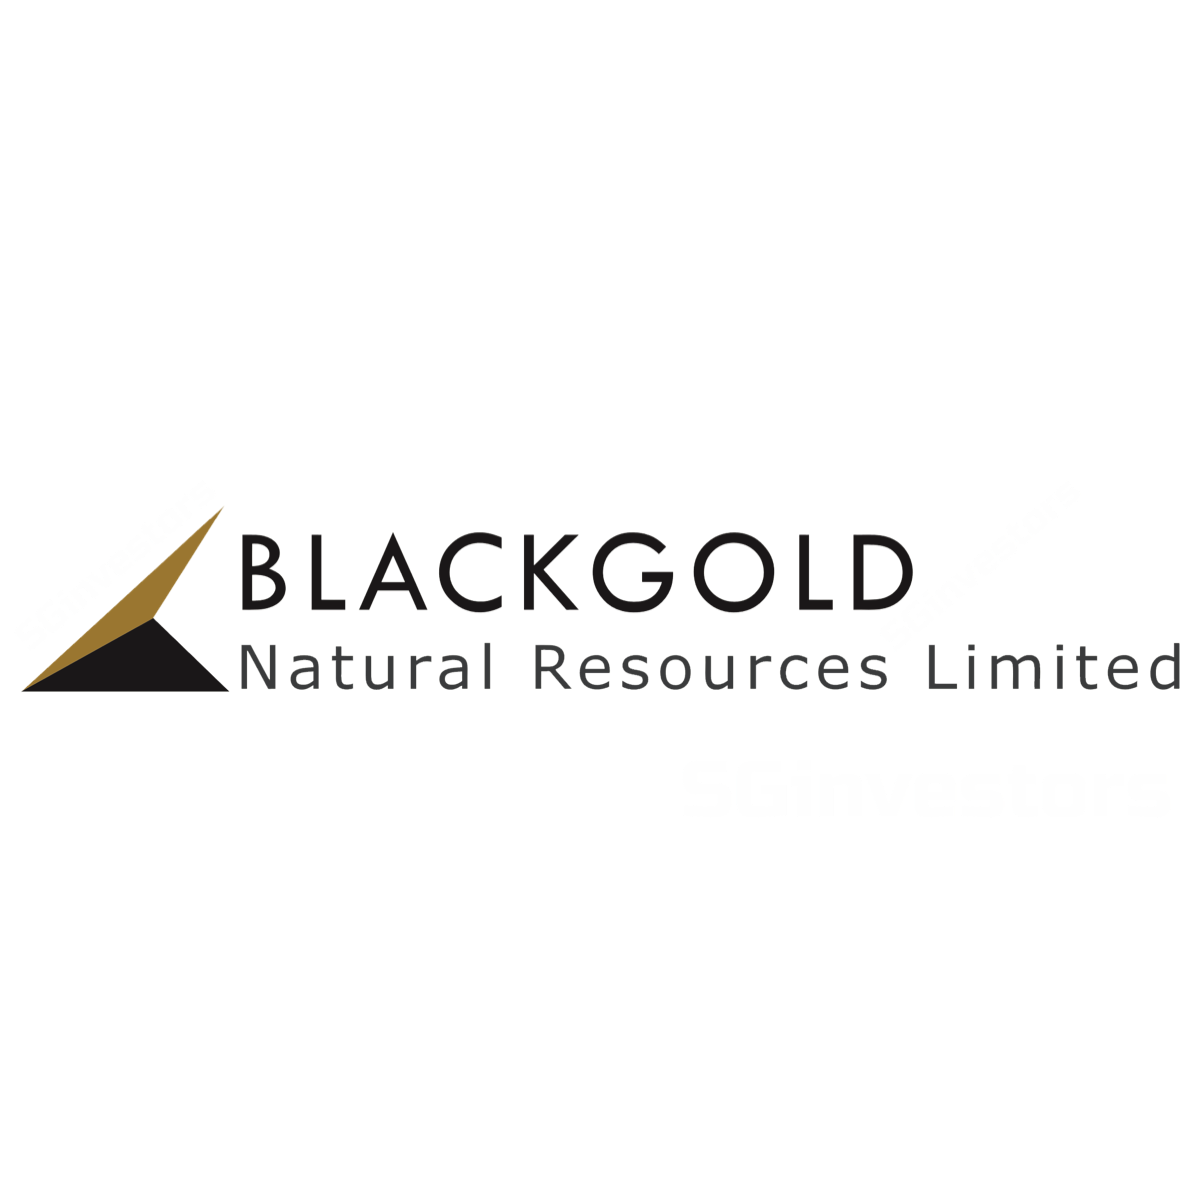 Blackgold Natural Resources - Phillip Securities 2017-08-28: Spike In Coal Sales